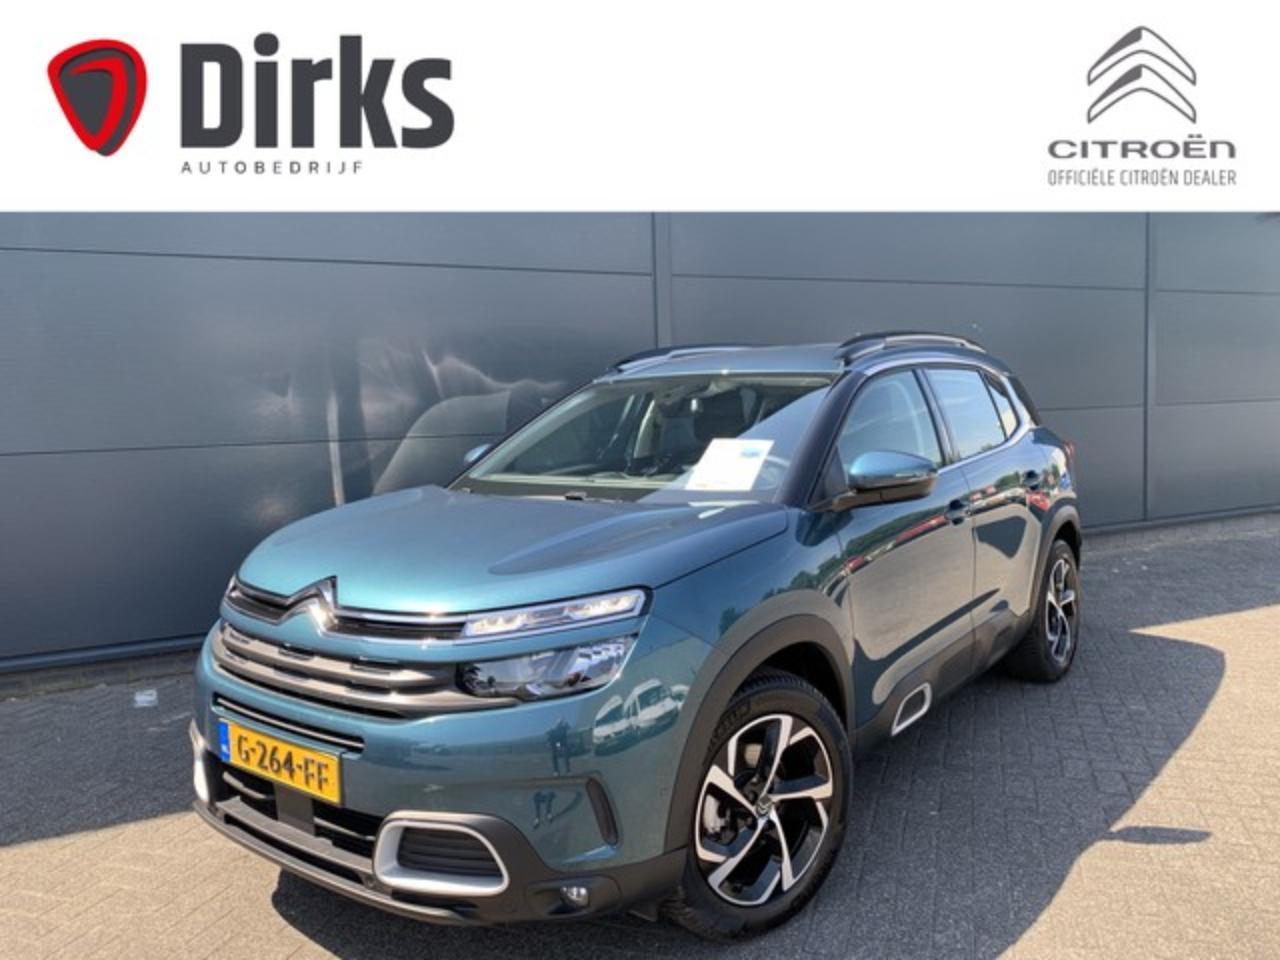 Citroën C5 AIRCROSS 1.2 PureTech 130PK Business NAVI/DAB+/CLIMA/CAMERA